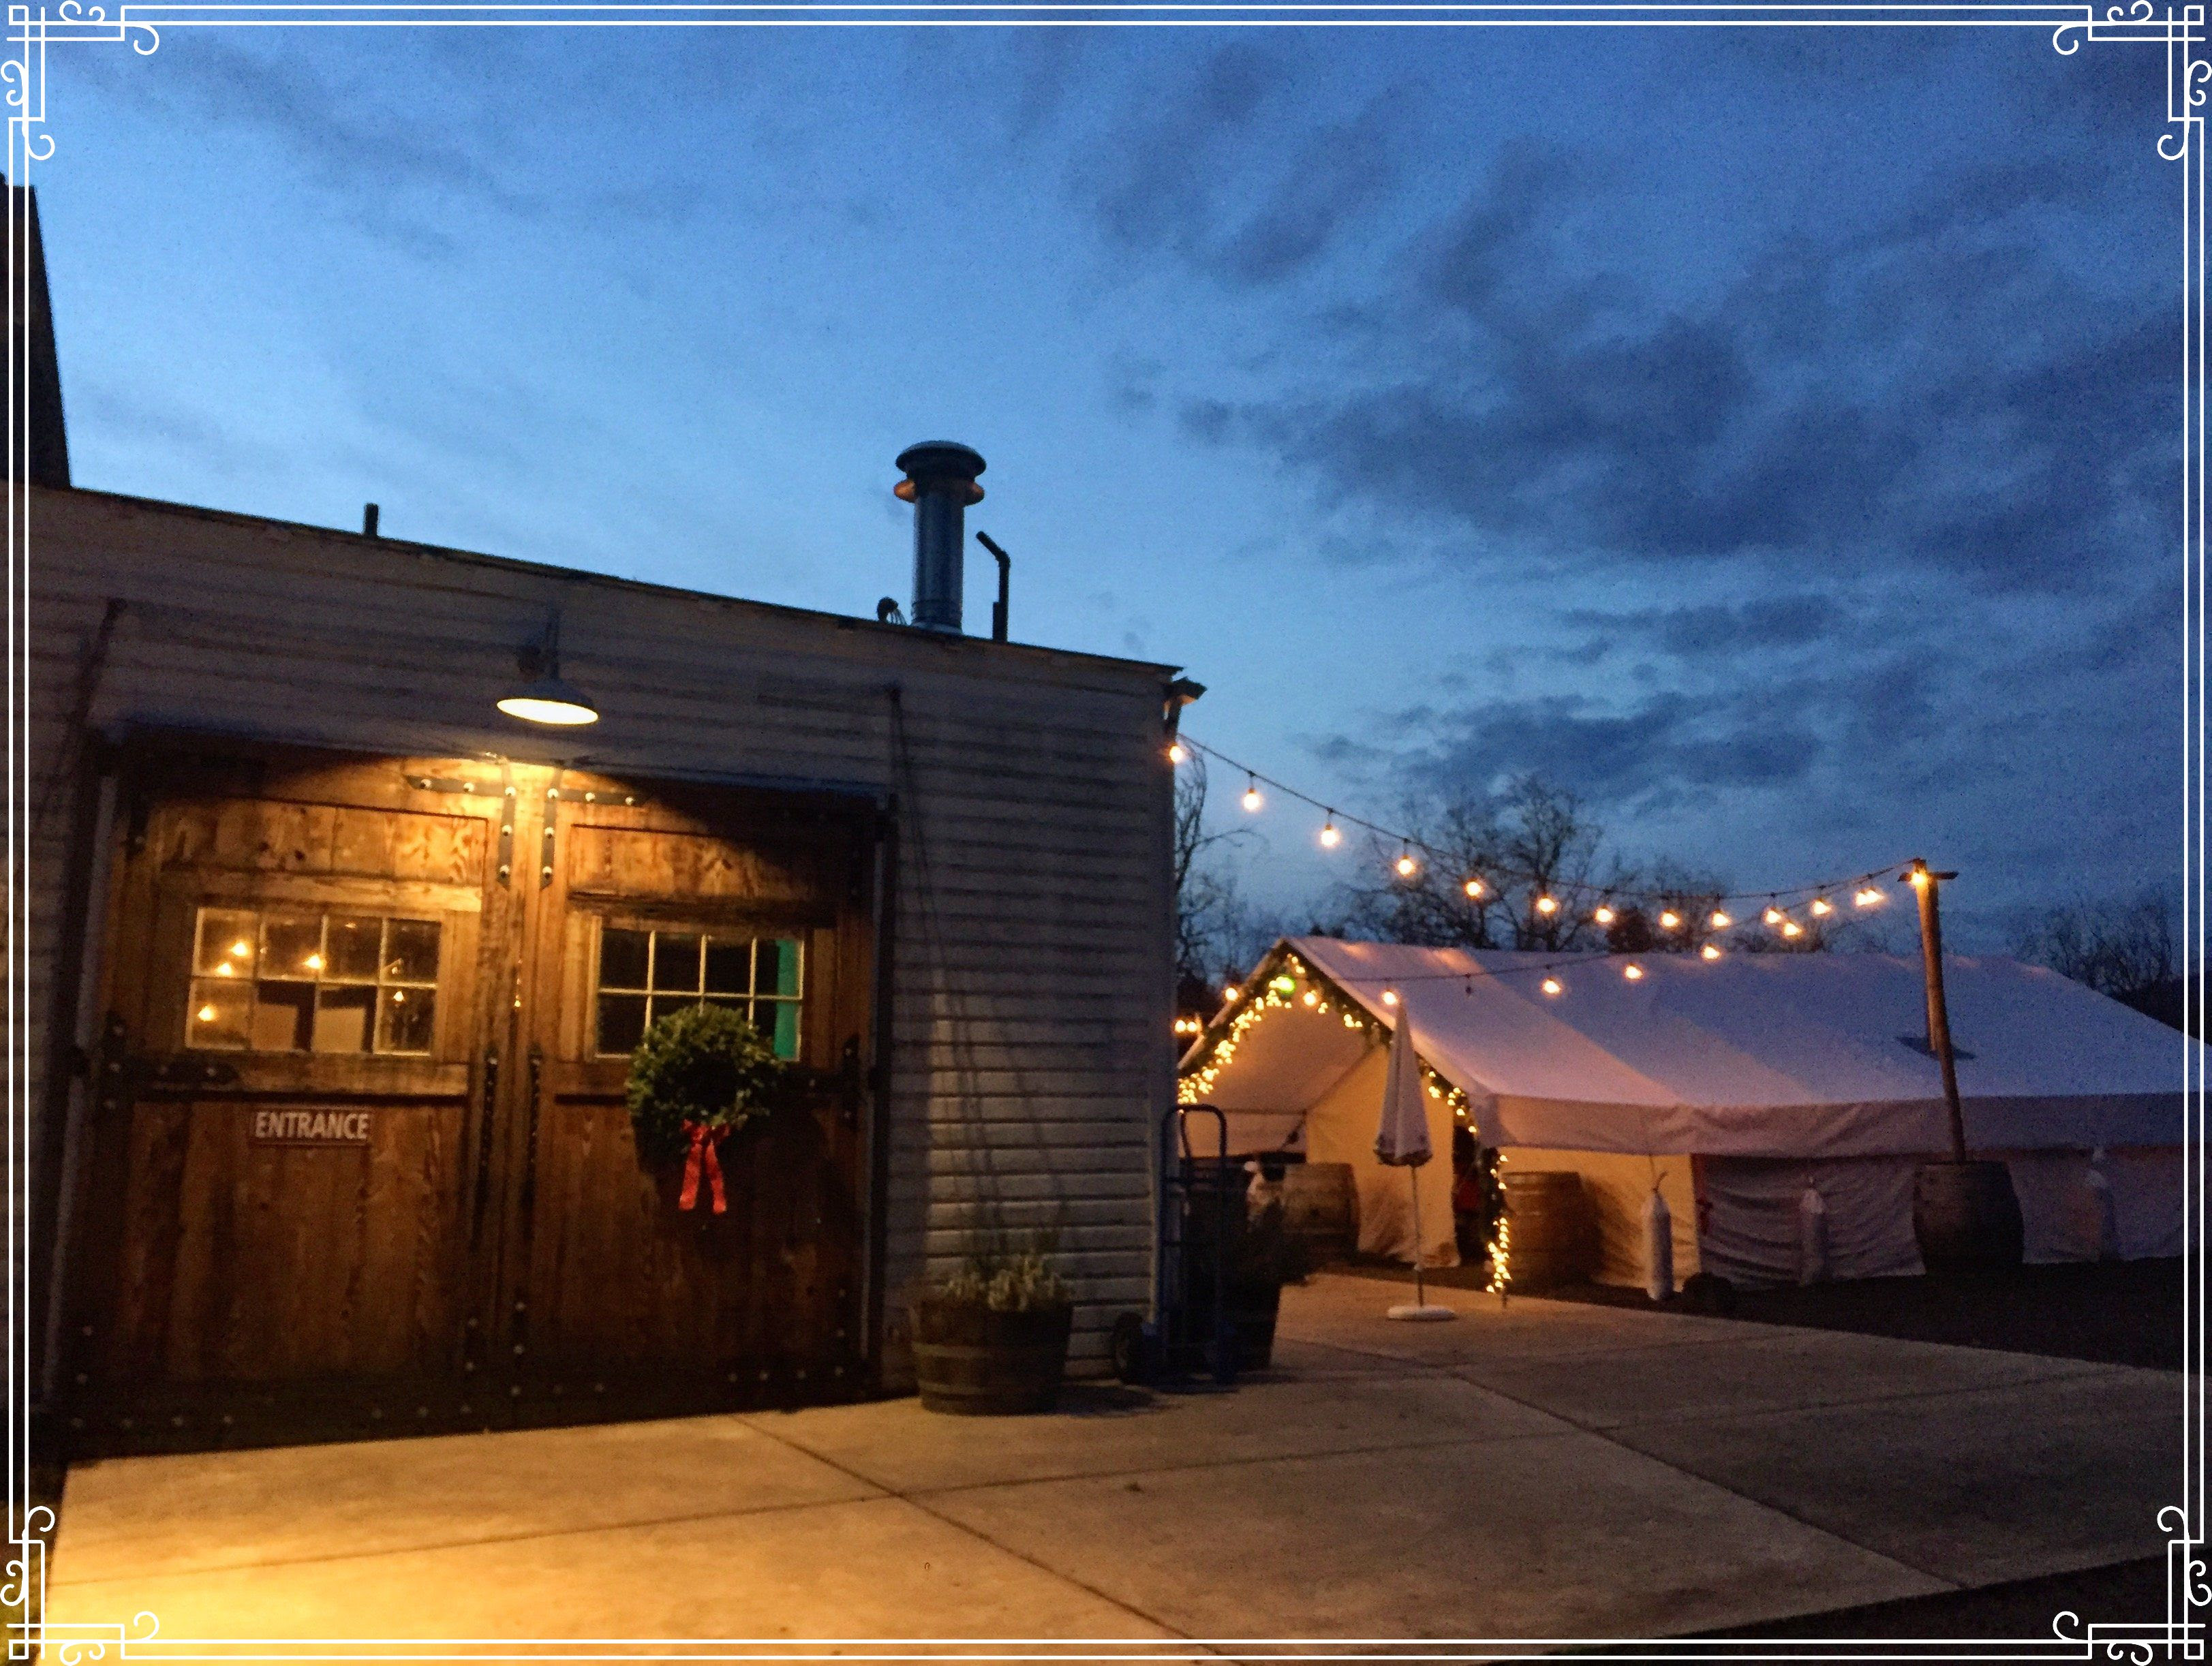 The festive decorations and outdoor tent at Wolves & People Farmhouse Brewery in Newberg, Oregon. (image courtesy Wolves & People Farmhouse Brewery)